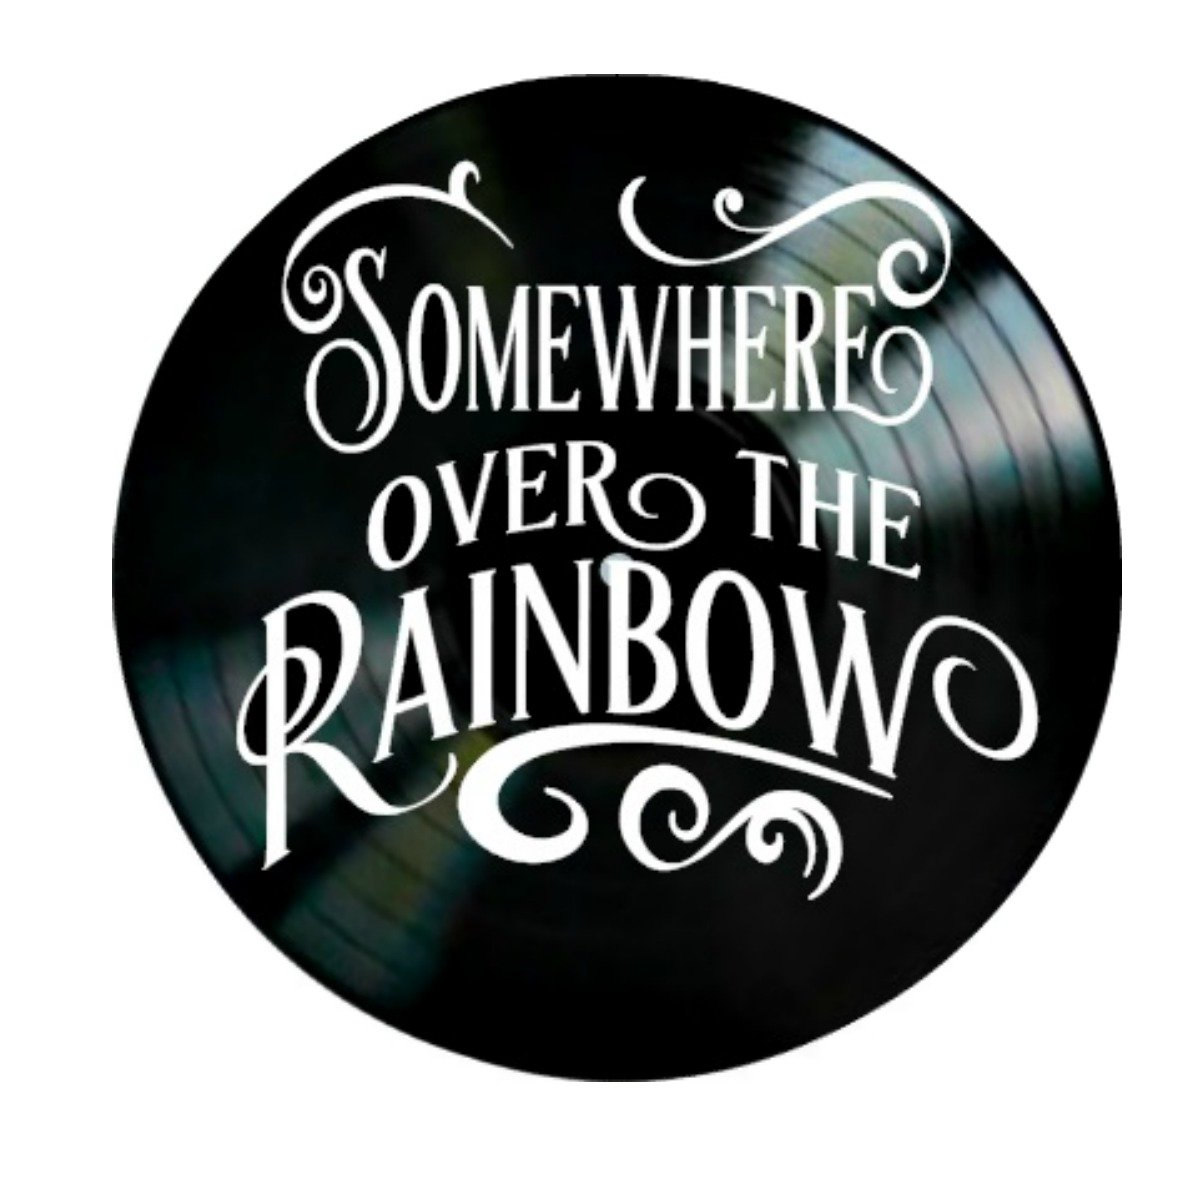 Somewhere Over the Rainbow song lyrics from The Wizard of Oz on a Vinyl Record Album Wall Art